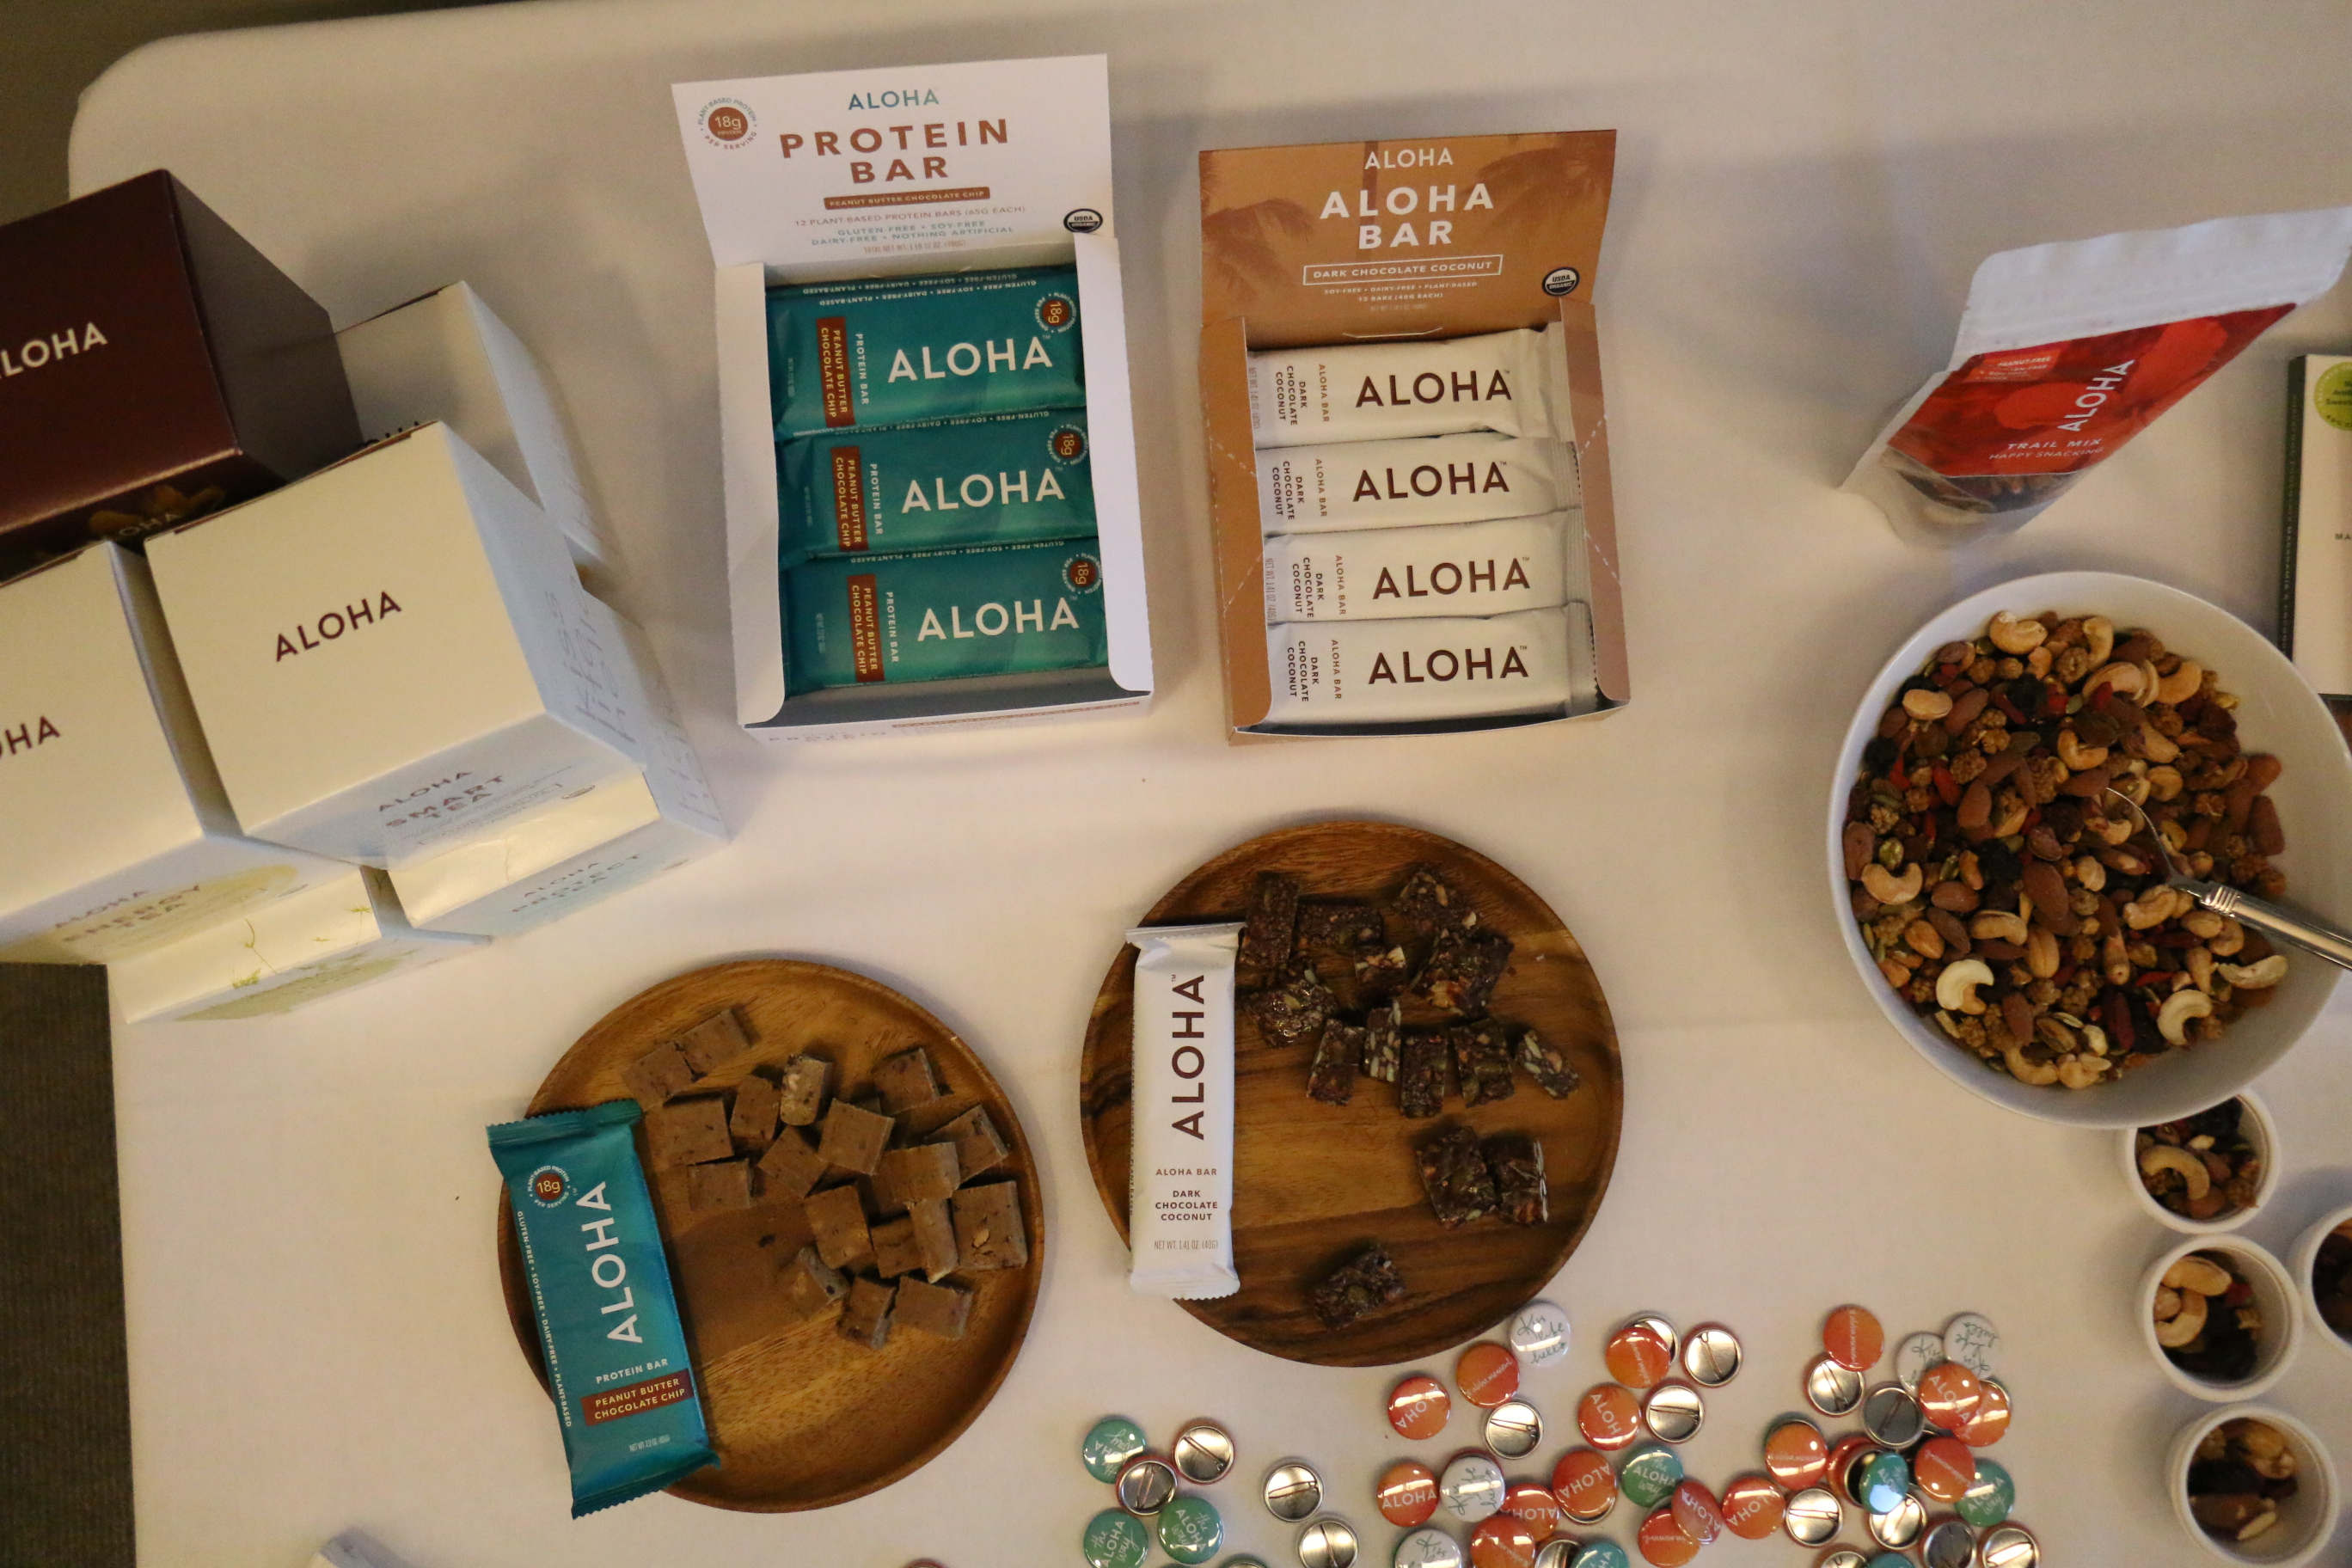 Enjoying Aloha protein bars as a healthy snack break during a recent Caroline Jordan Fitness corporate wellness workshop for Kirkland and Ellis